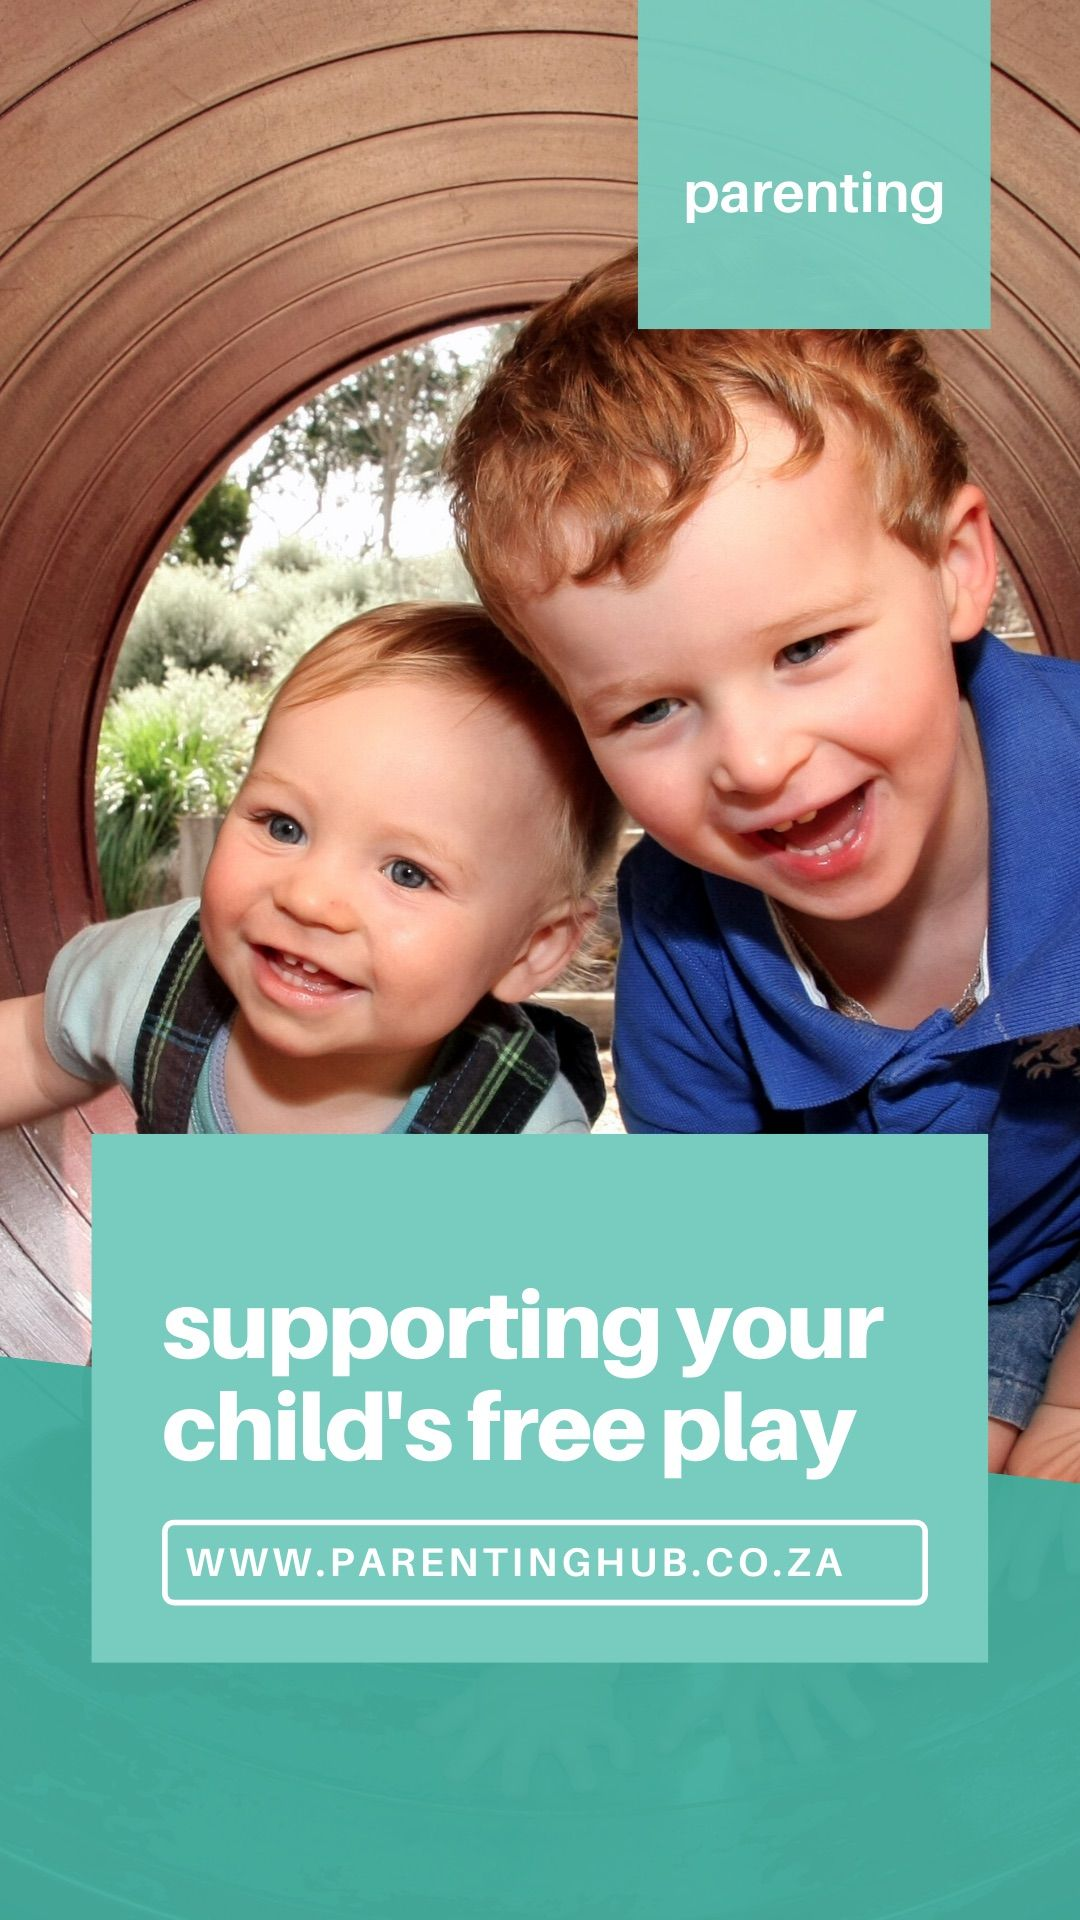 Play Skills Similar To Other Developmental Skills Progress In Complexity With Time And Practice Caregiver Support And Their Child Advice Children Parenting